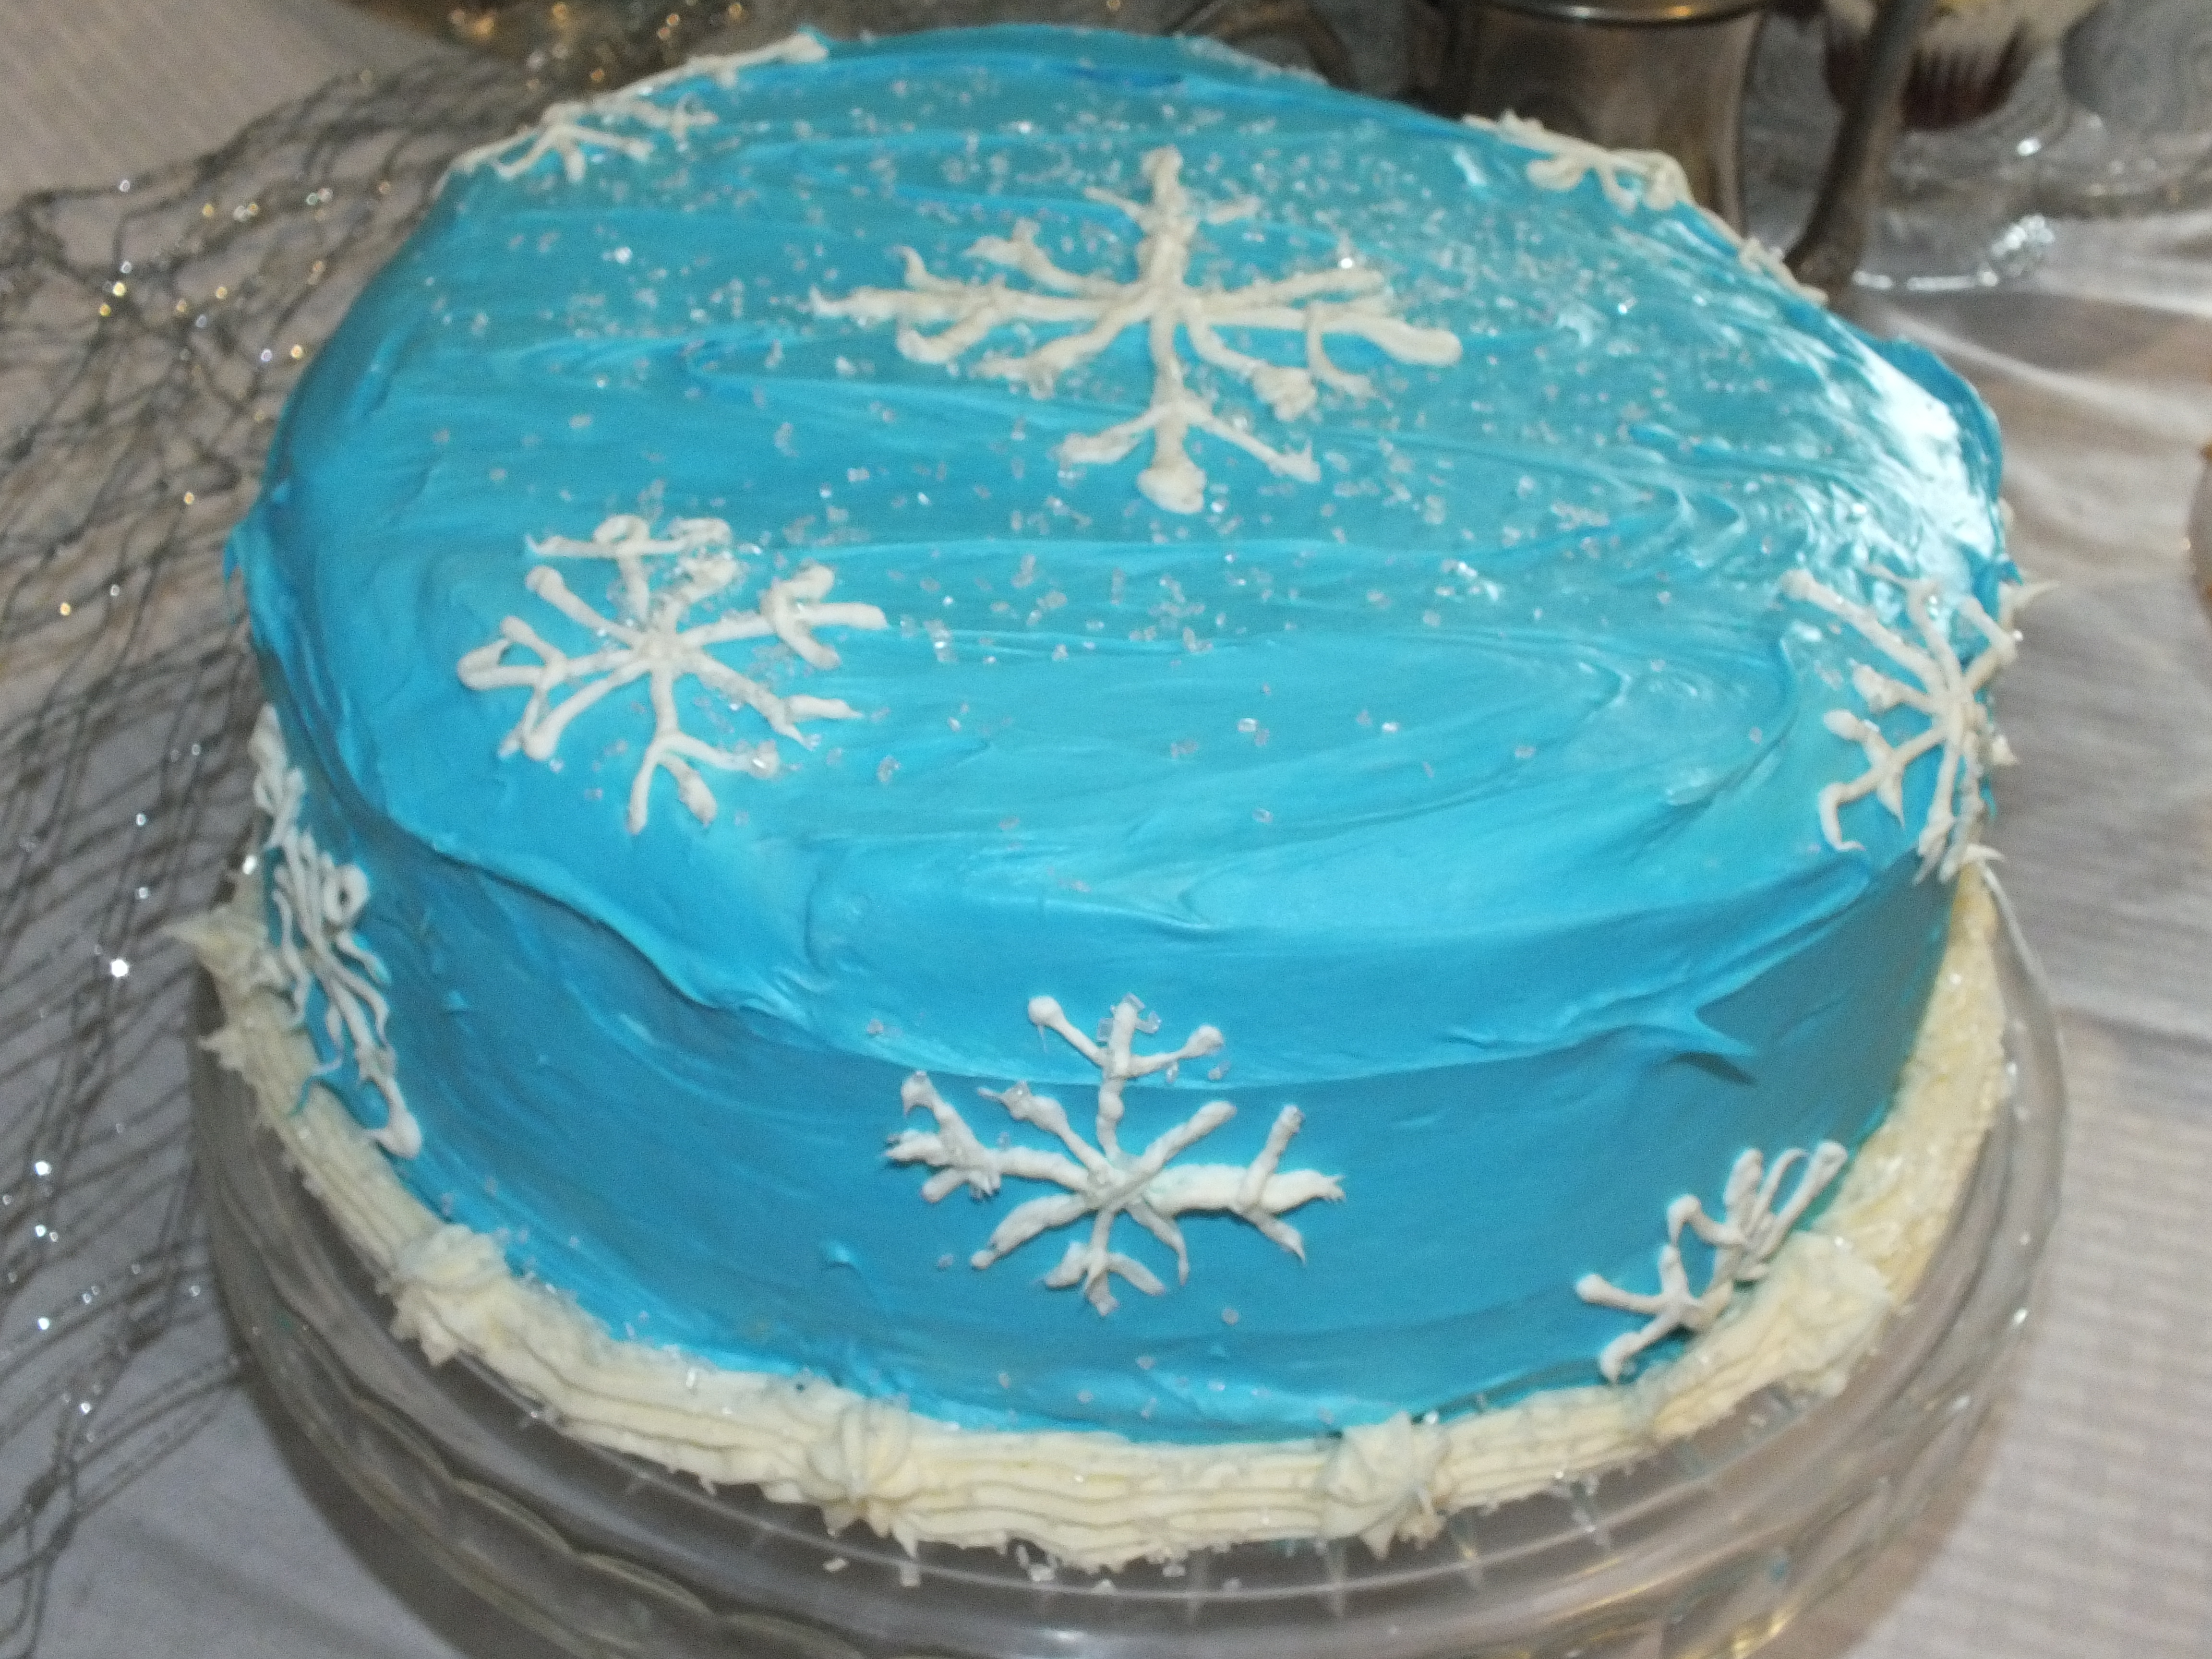 ... The Perfect Balance Of Sweet And Tart With An Icy Cake on Pinterest